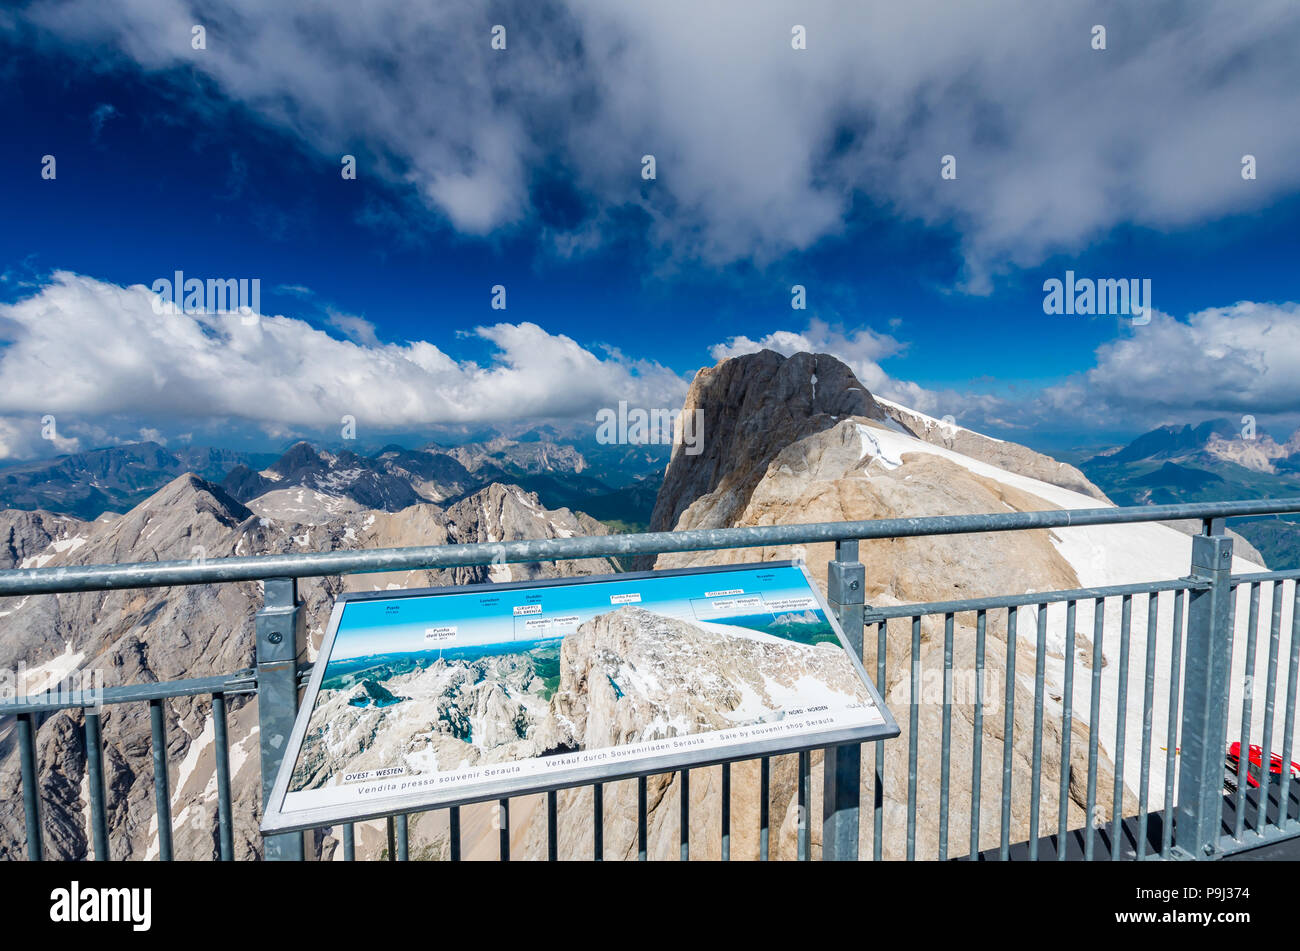 Marmolada massif, Dolomiti, Itay. Spectacular view over the Punta Rocca and other peaks in Dolomites mountains - Stock Image